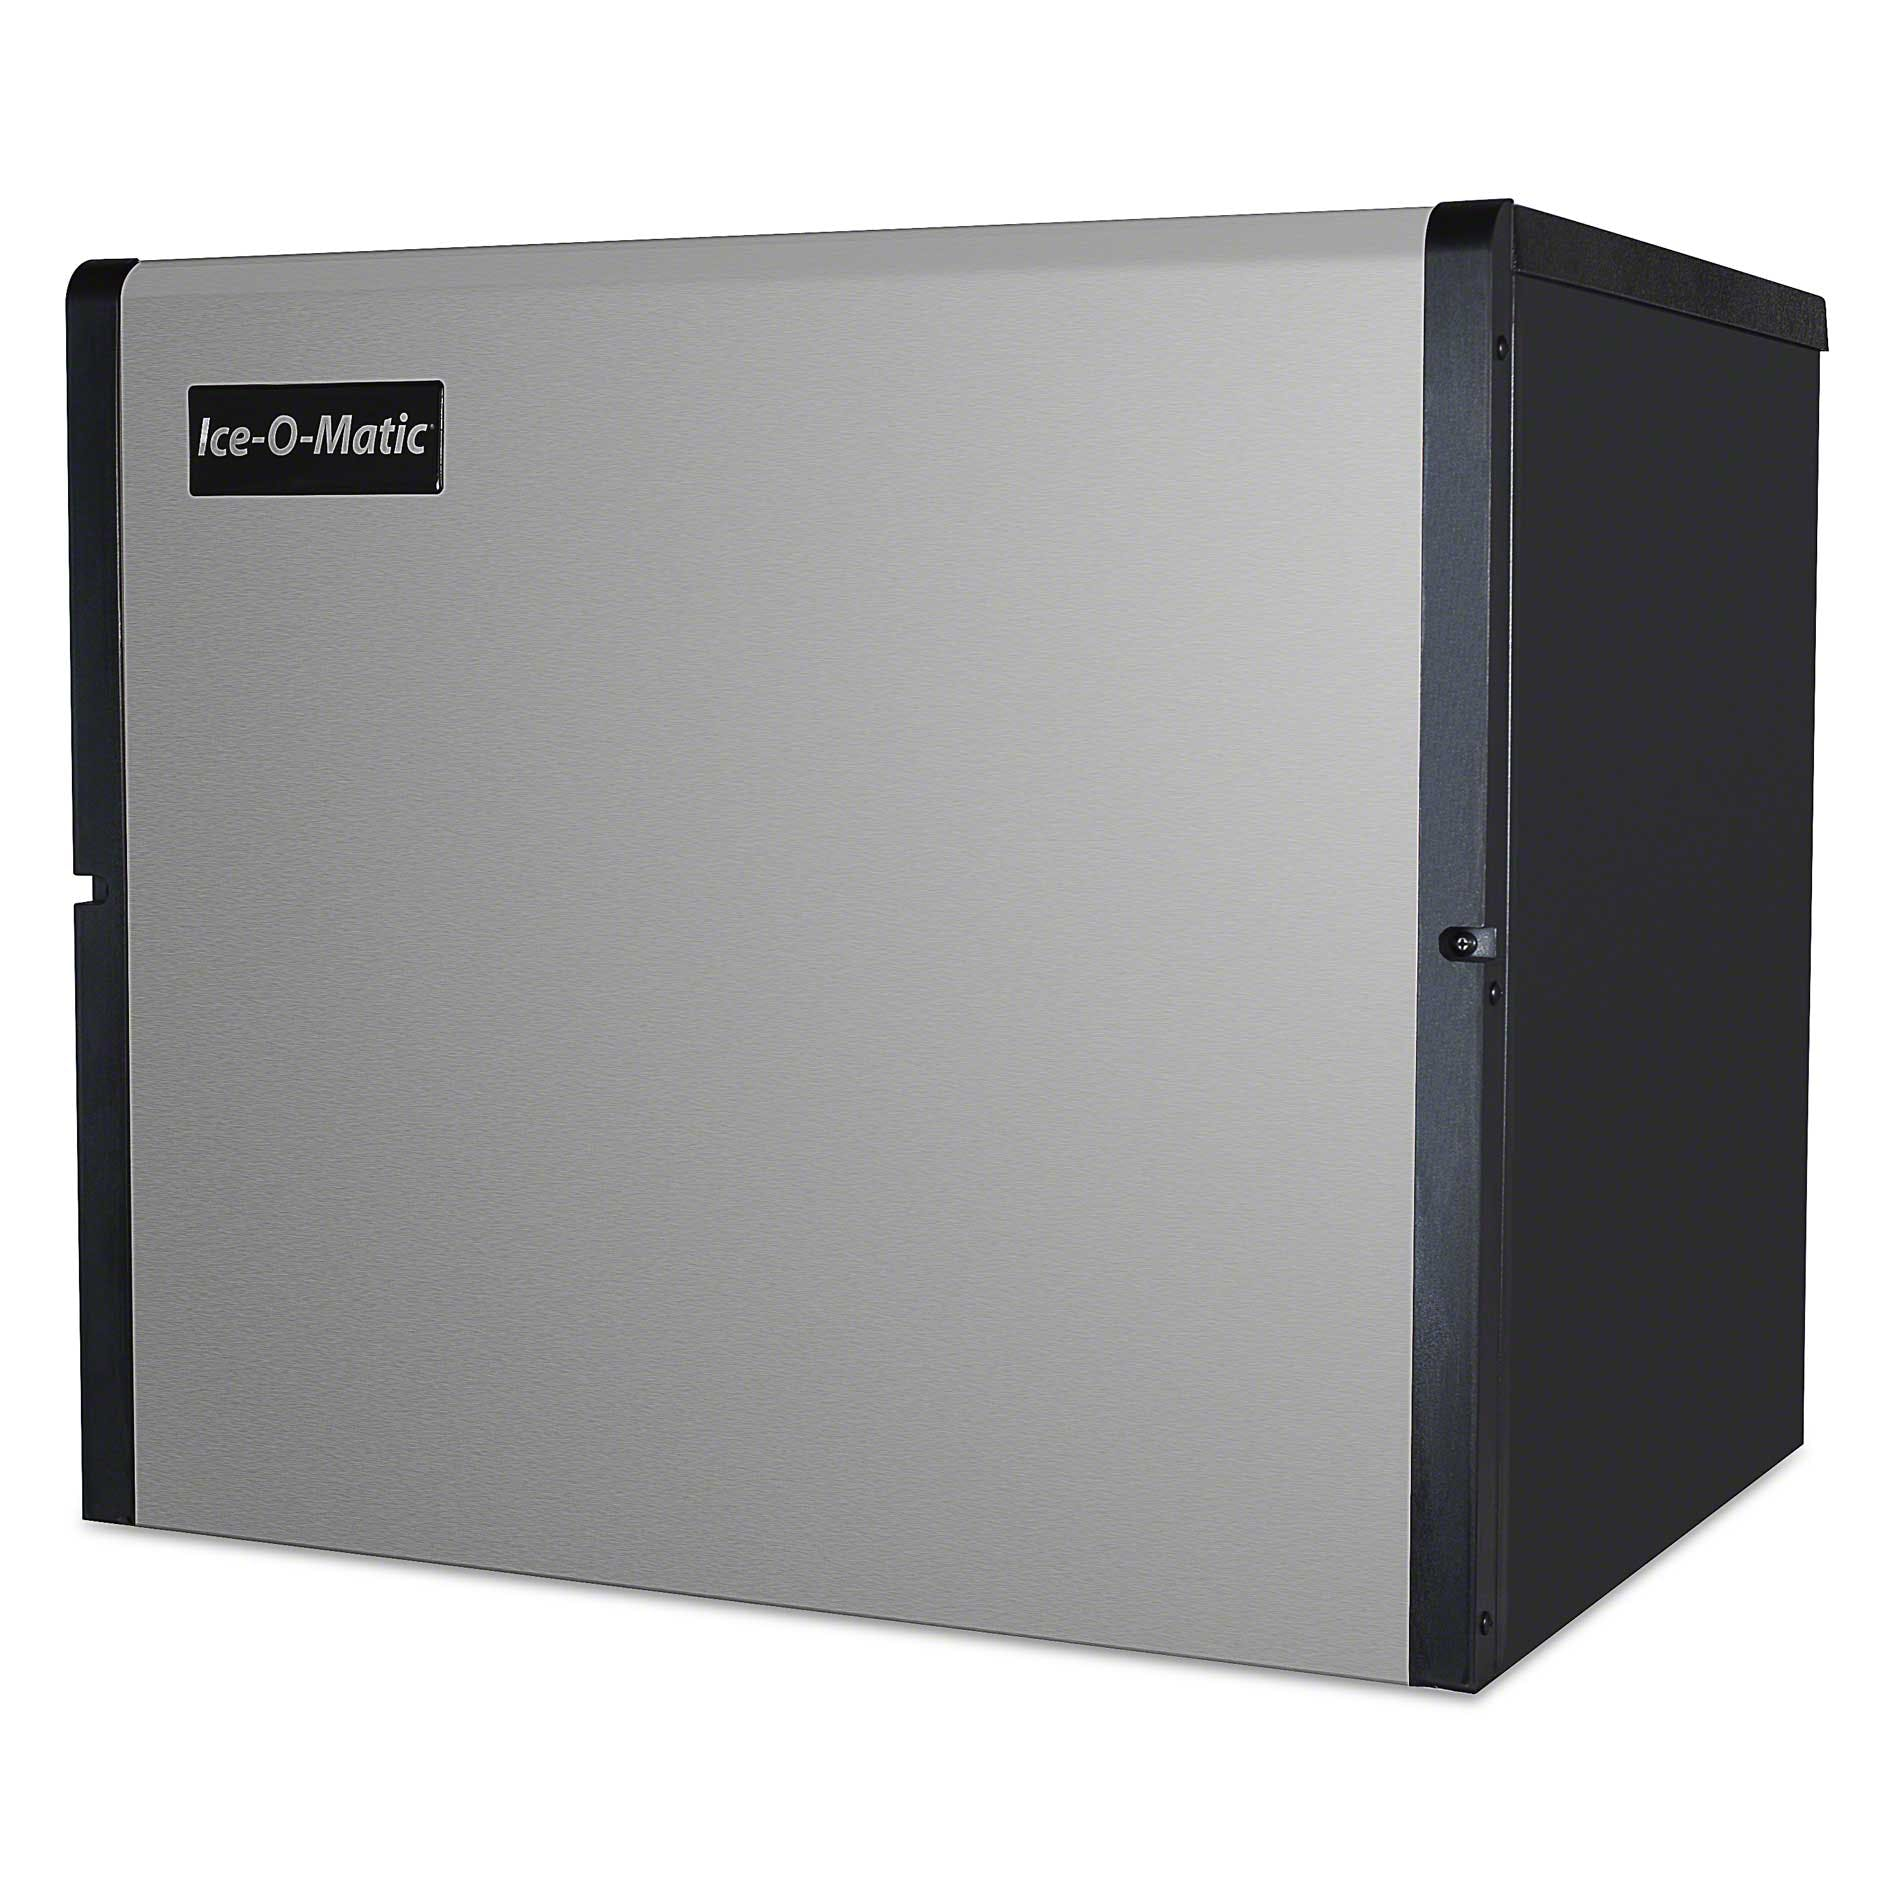 Ice-O-Matic - ICE0806HR 913 lb Half Cube Ice Machine - sold by Food Service Warehouse